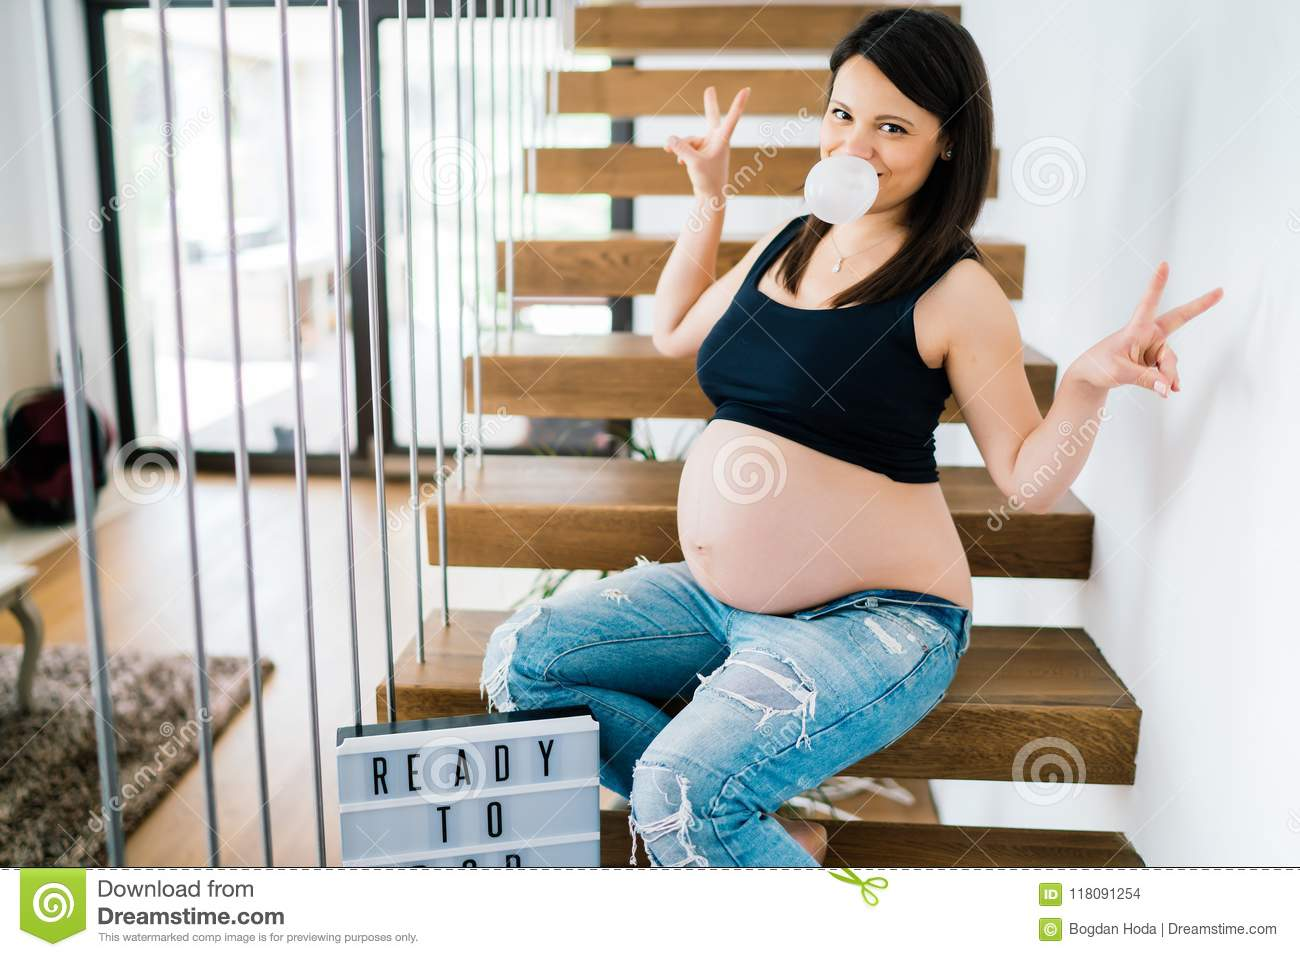 Cheerful portrait of young pregnant woman sitting on stairs enjoying life. modern lifestyle details - new home and baby coming